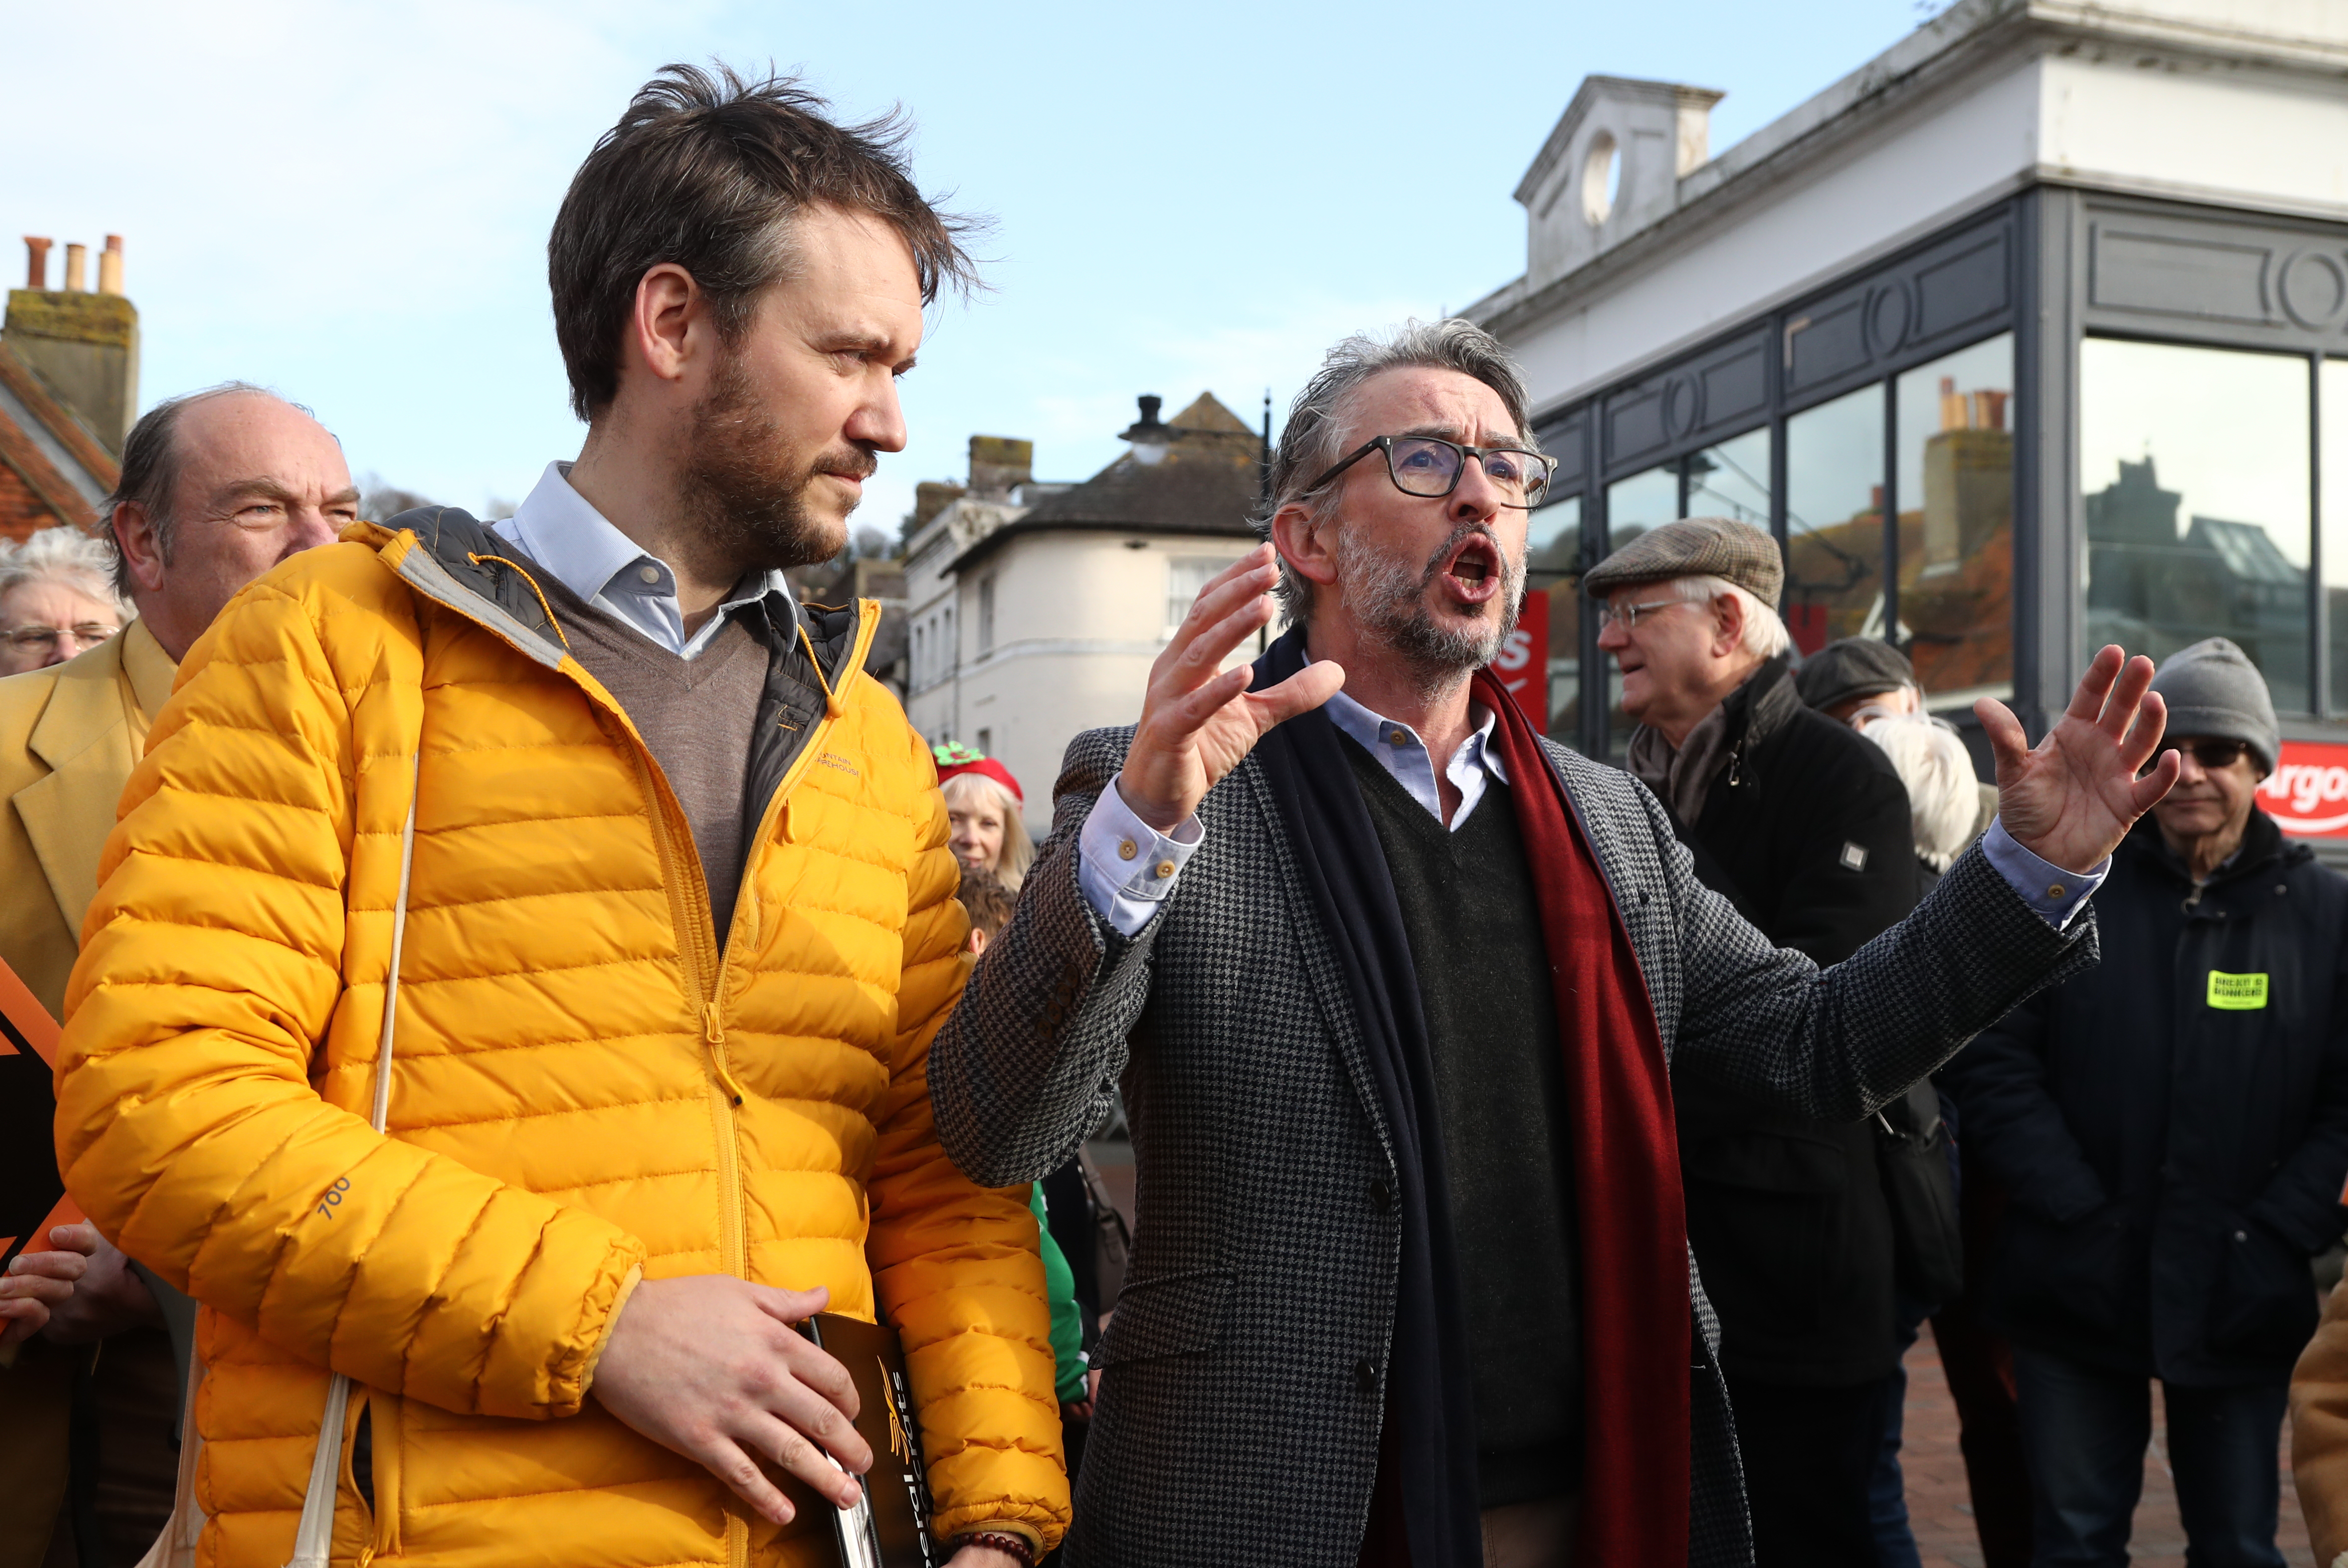 Actor Steve Coogan canvassing in Lewes, in the Lewes constituency with Liberal Democrat candidate Oliver Henman.